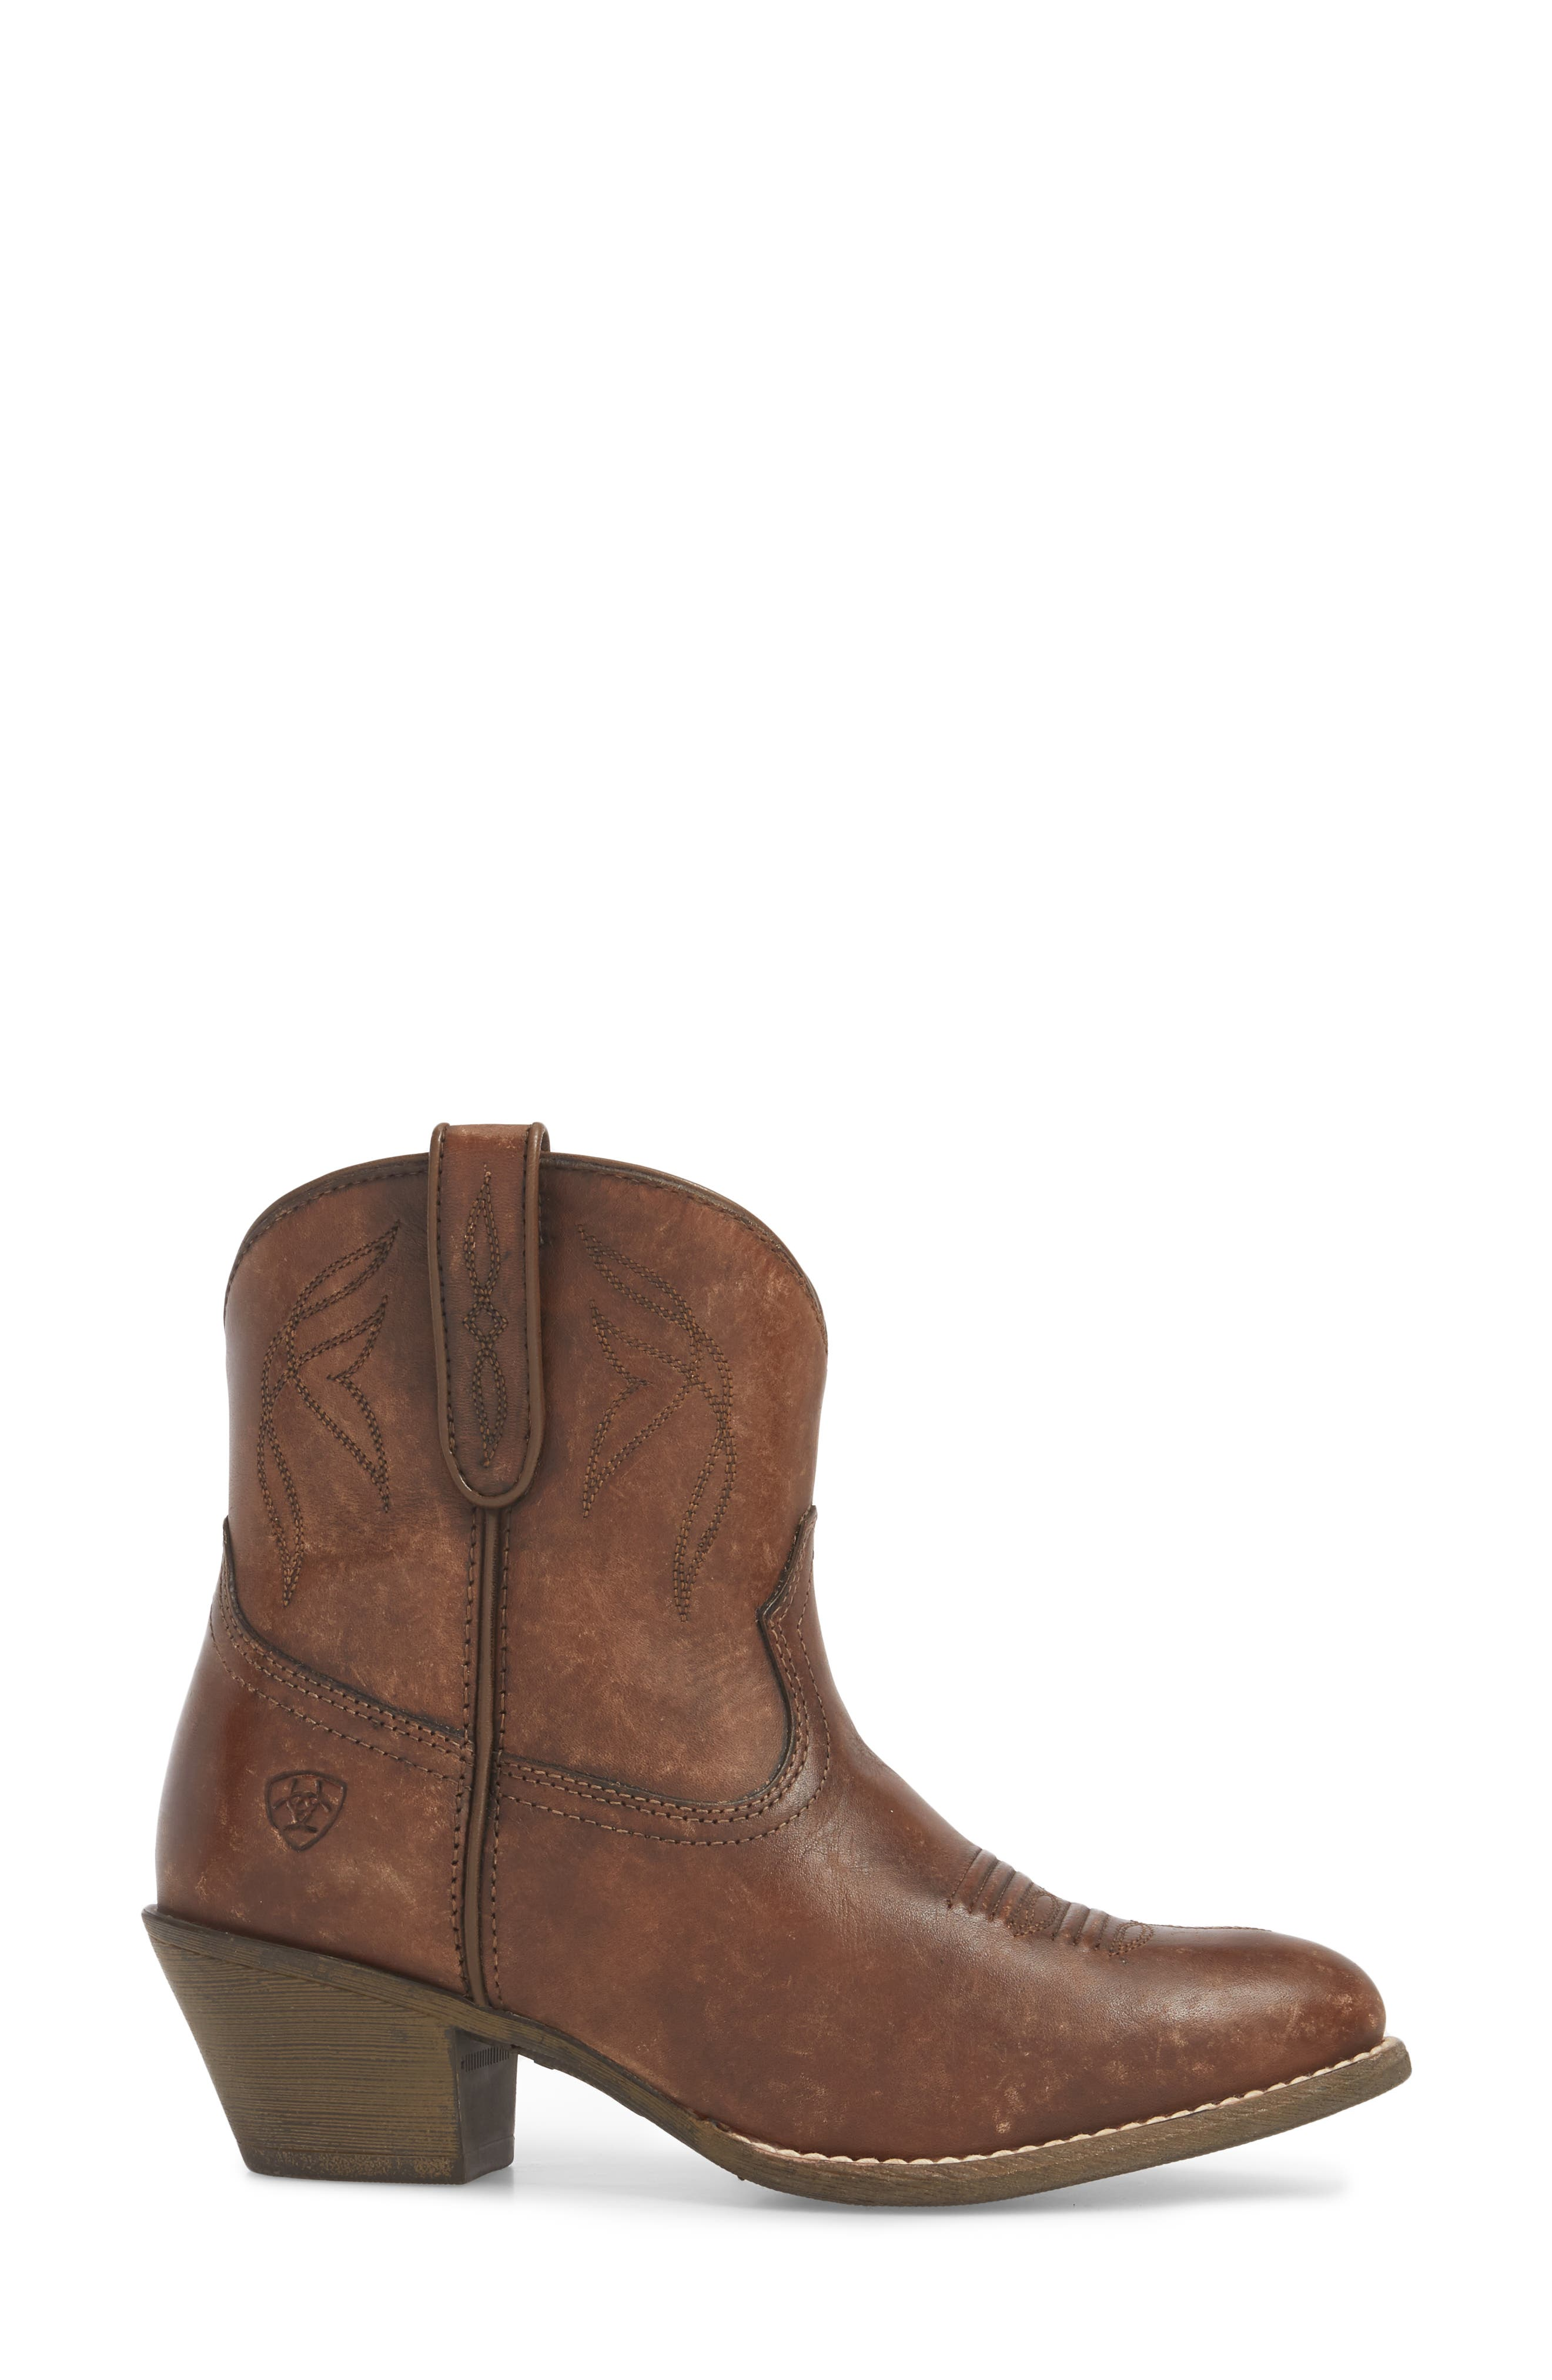 Darlin Short Western Boot,                             Alternate thumbnail 3, color,                             Distressed Brown Leather